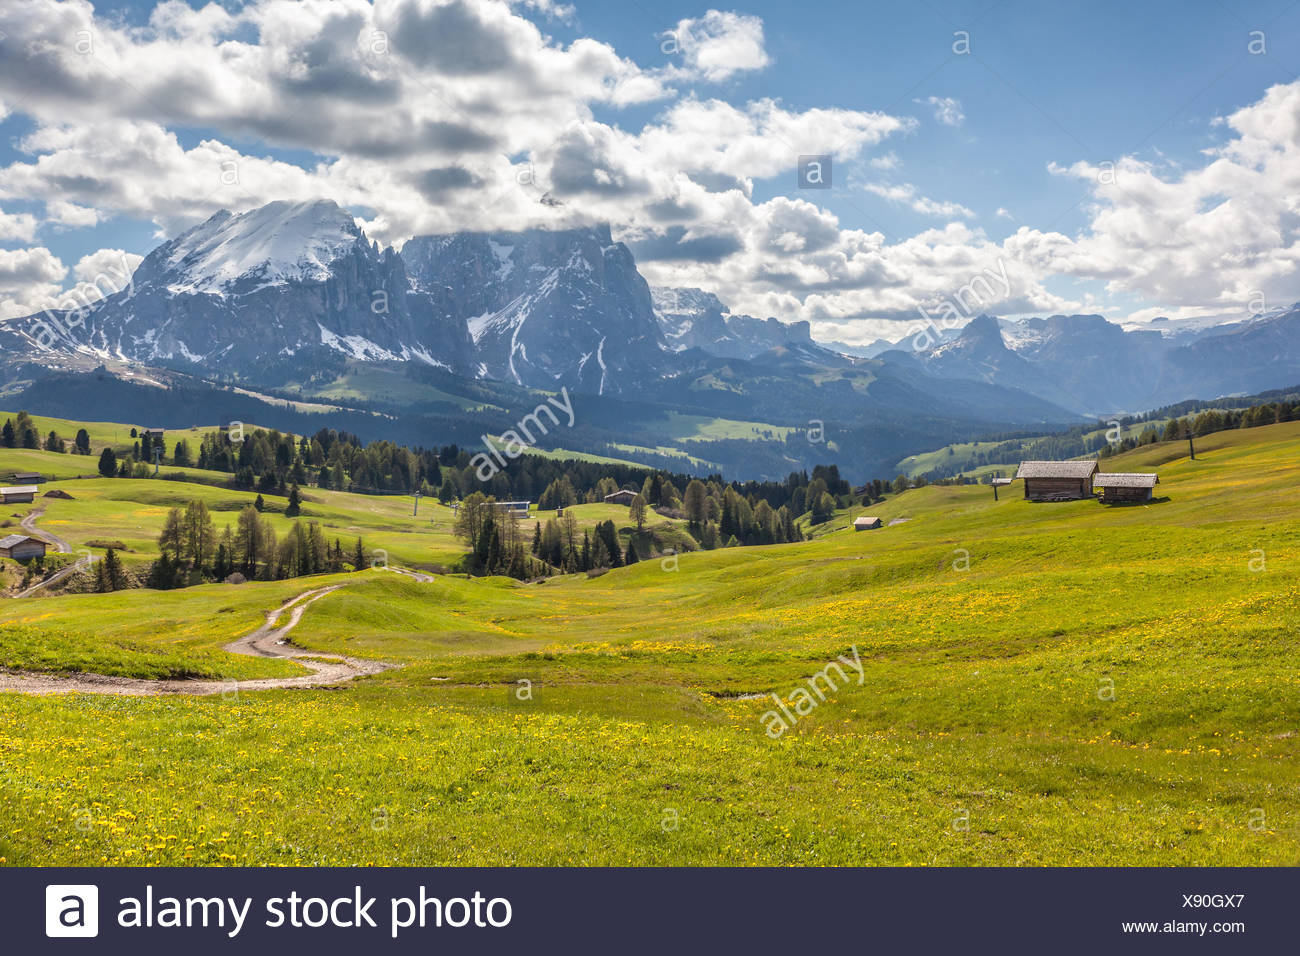 geography / travel, Italy, South Tyrol, Alm on the Seiser mountain pasture with view to the Plattkofel, Additional-Rights-Clearance-Info-Not-Available - Stock Image